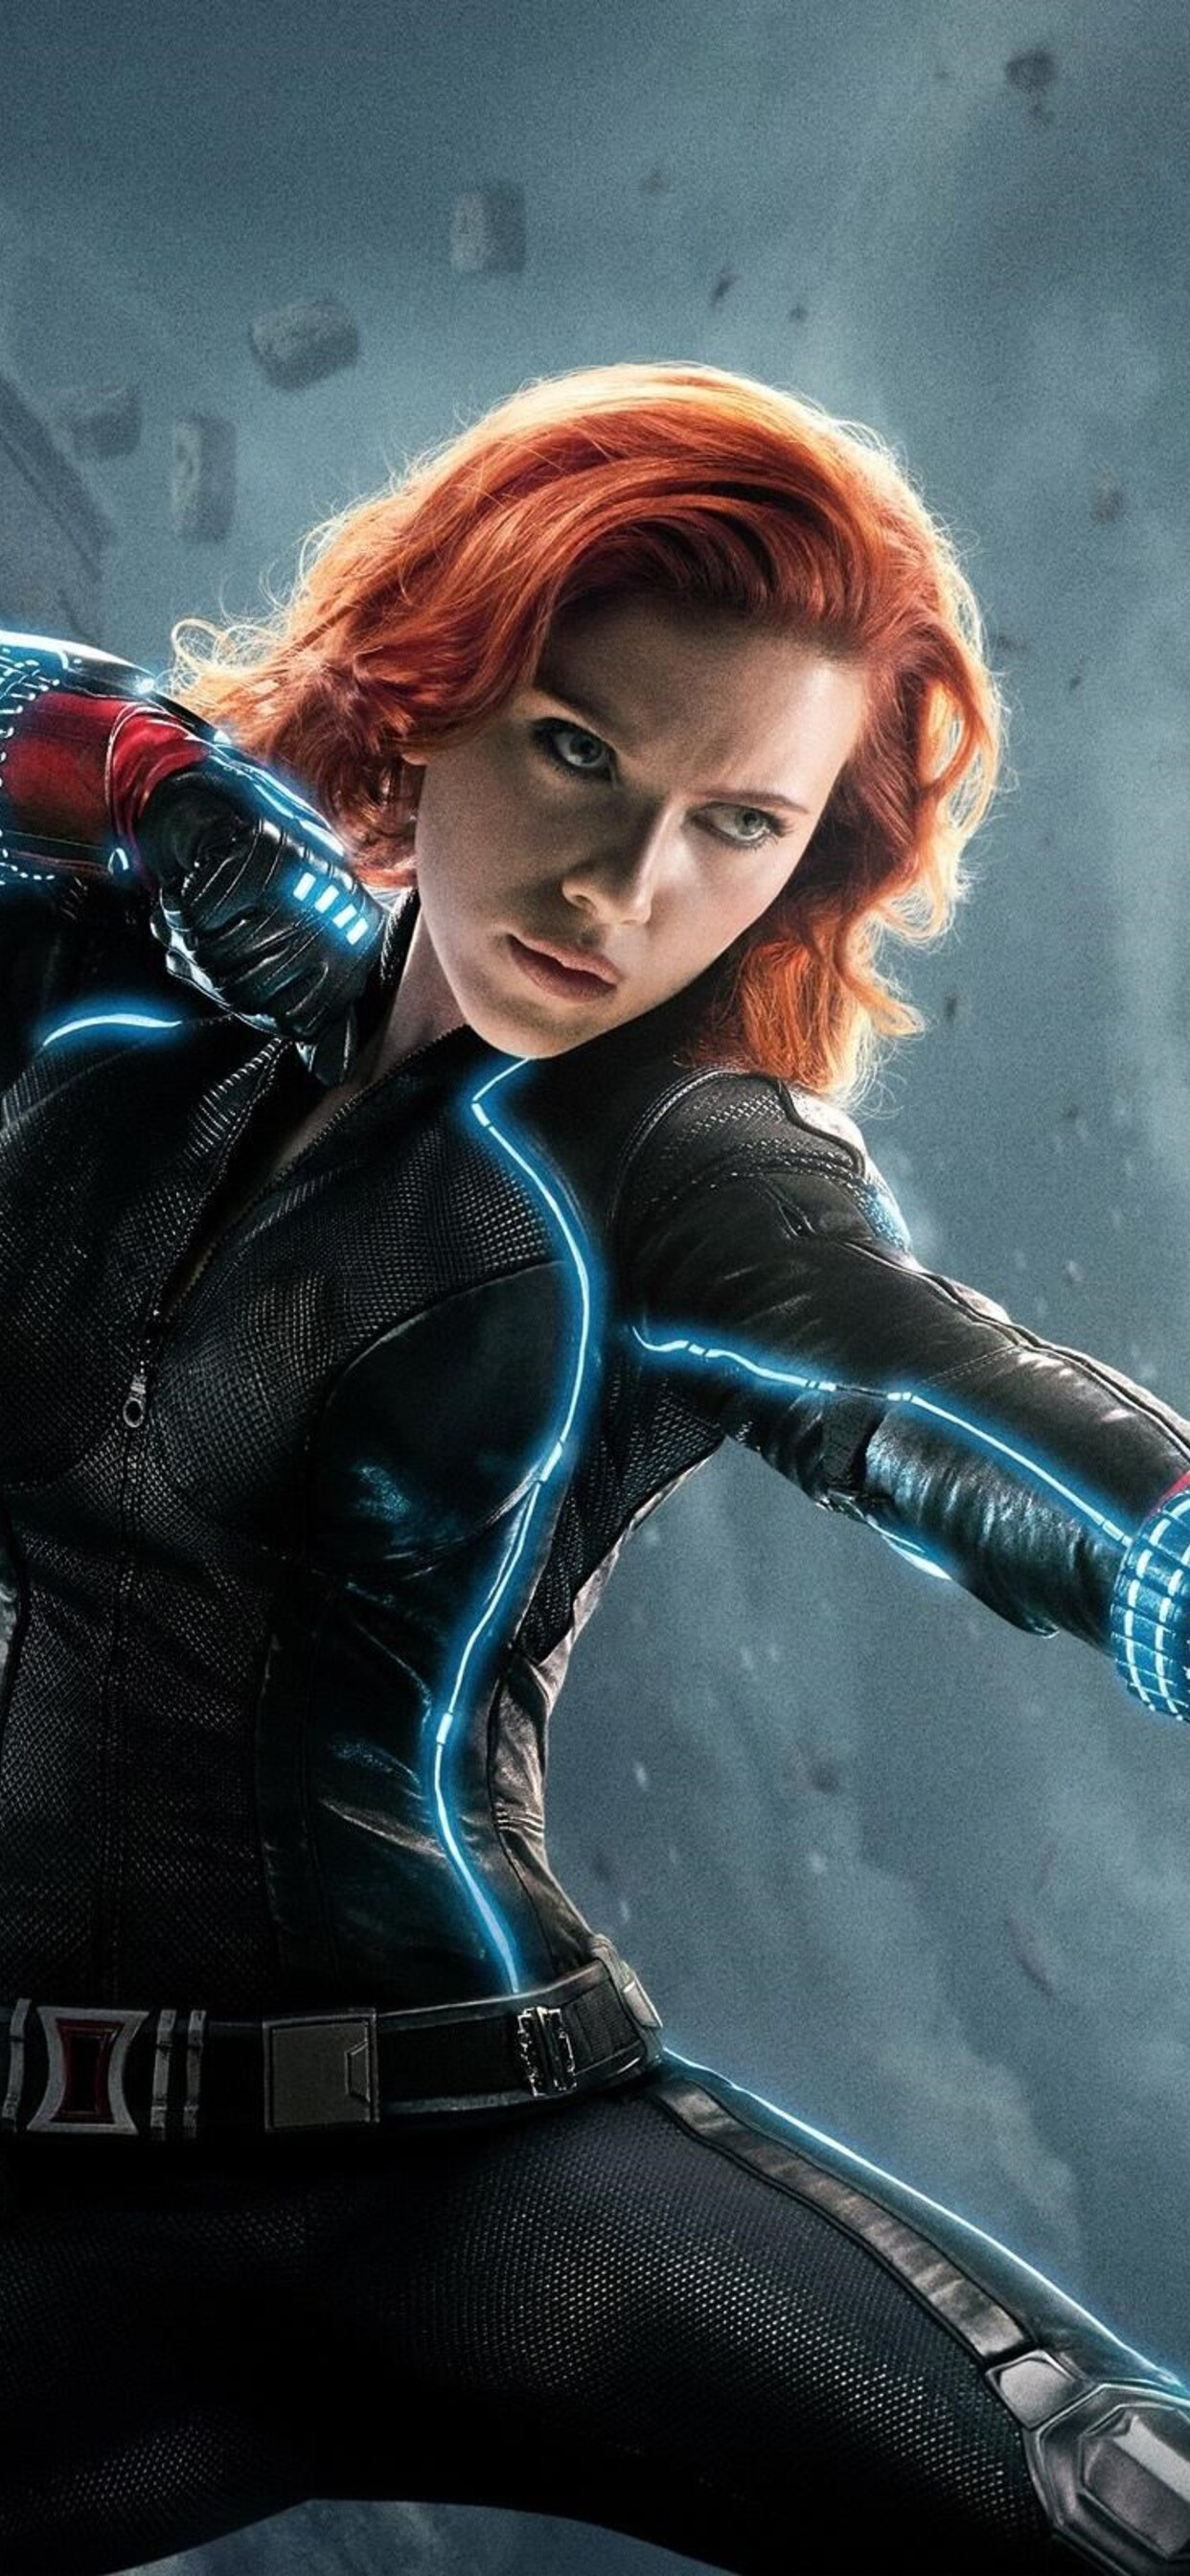 1242x2688 Avengers Age Of Ultron Black Widow Iphone Xs Max